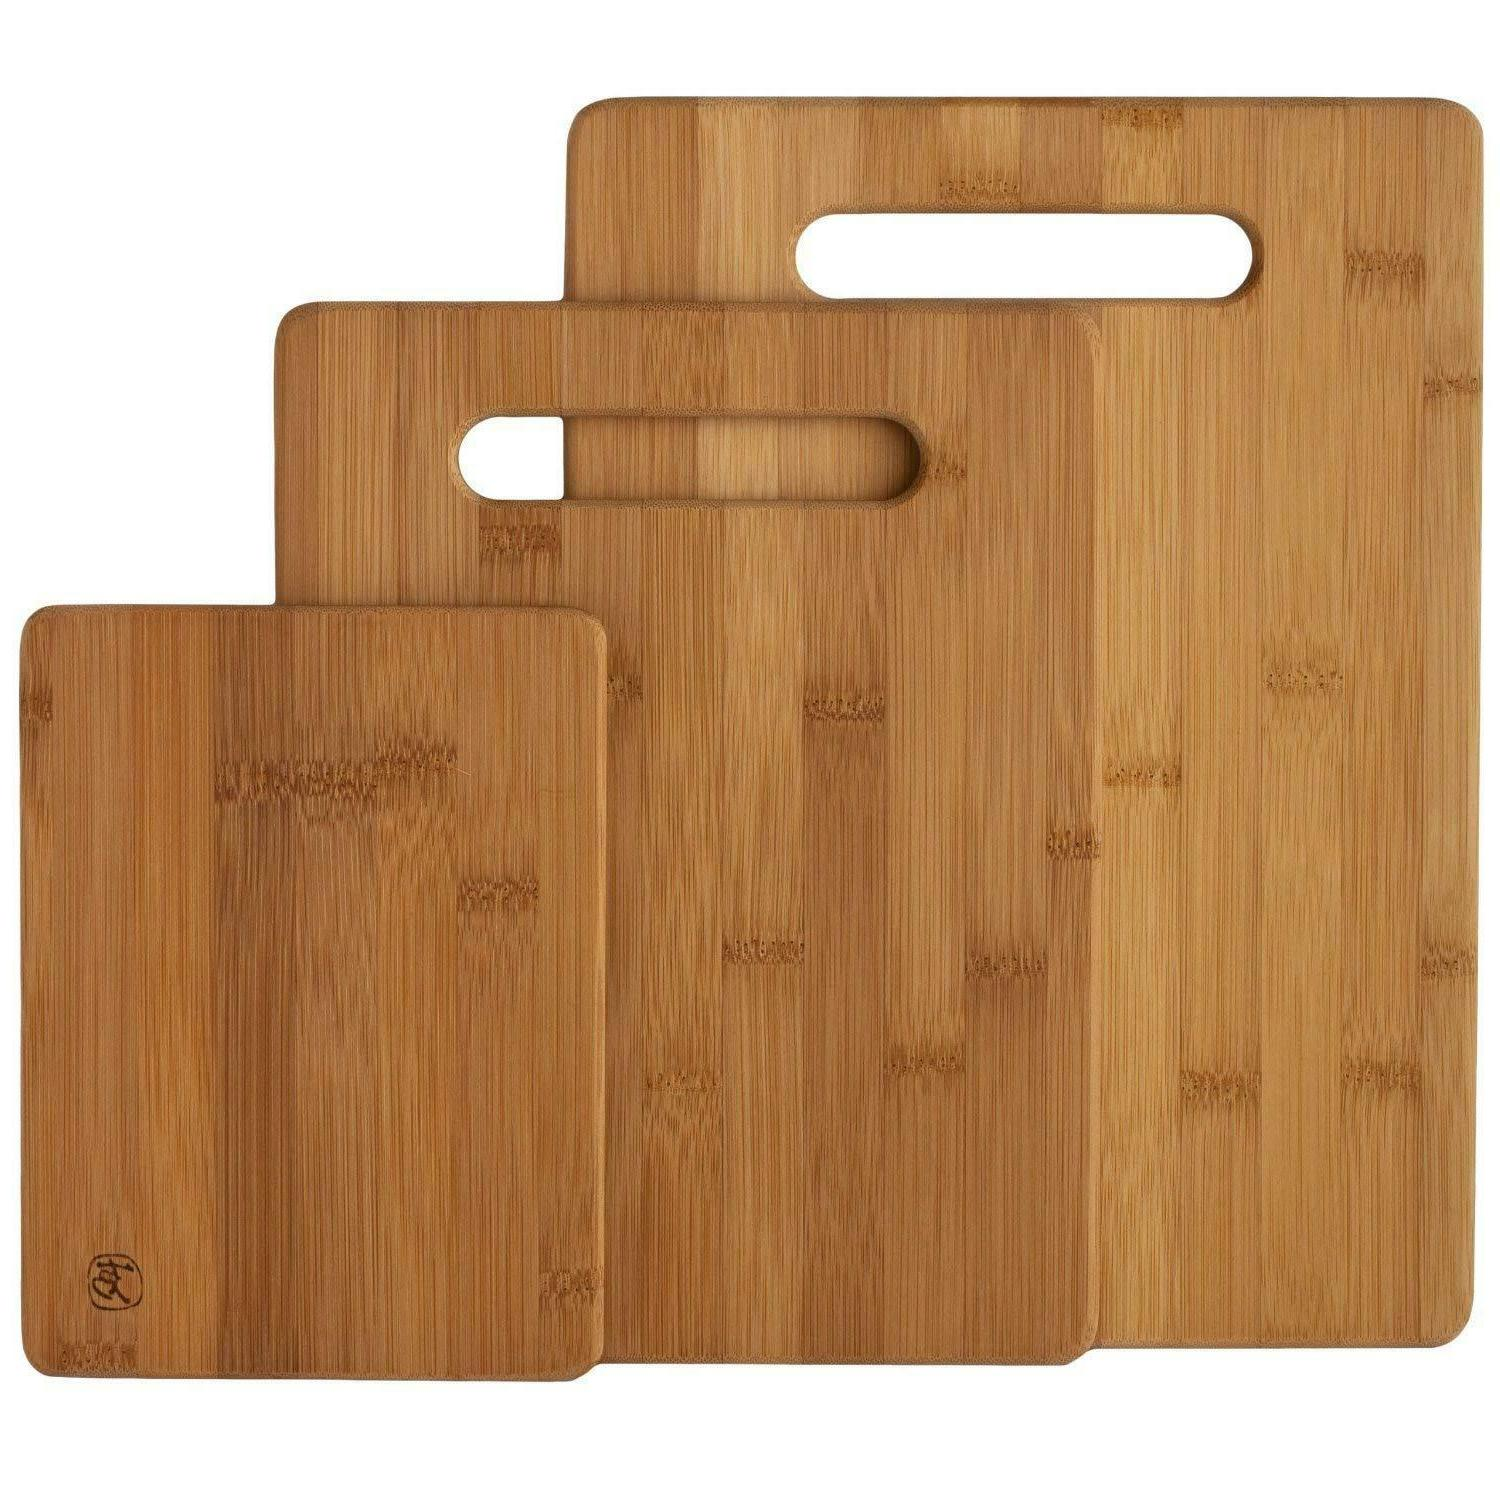 3 Piece Bamboo Cutting Board Set Wood Chopping Boards For Me